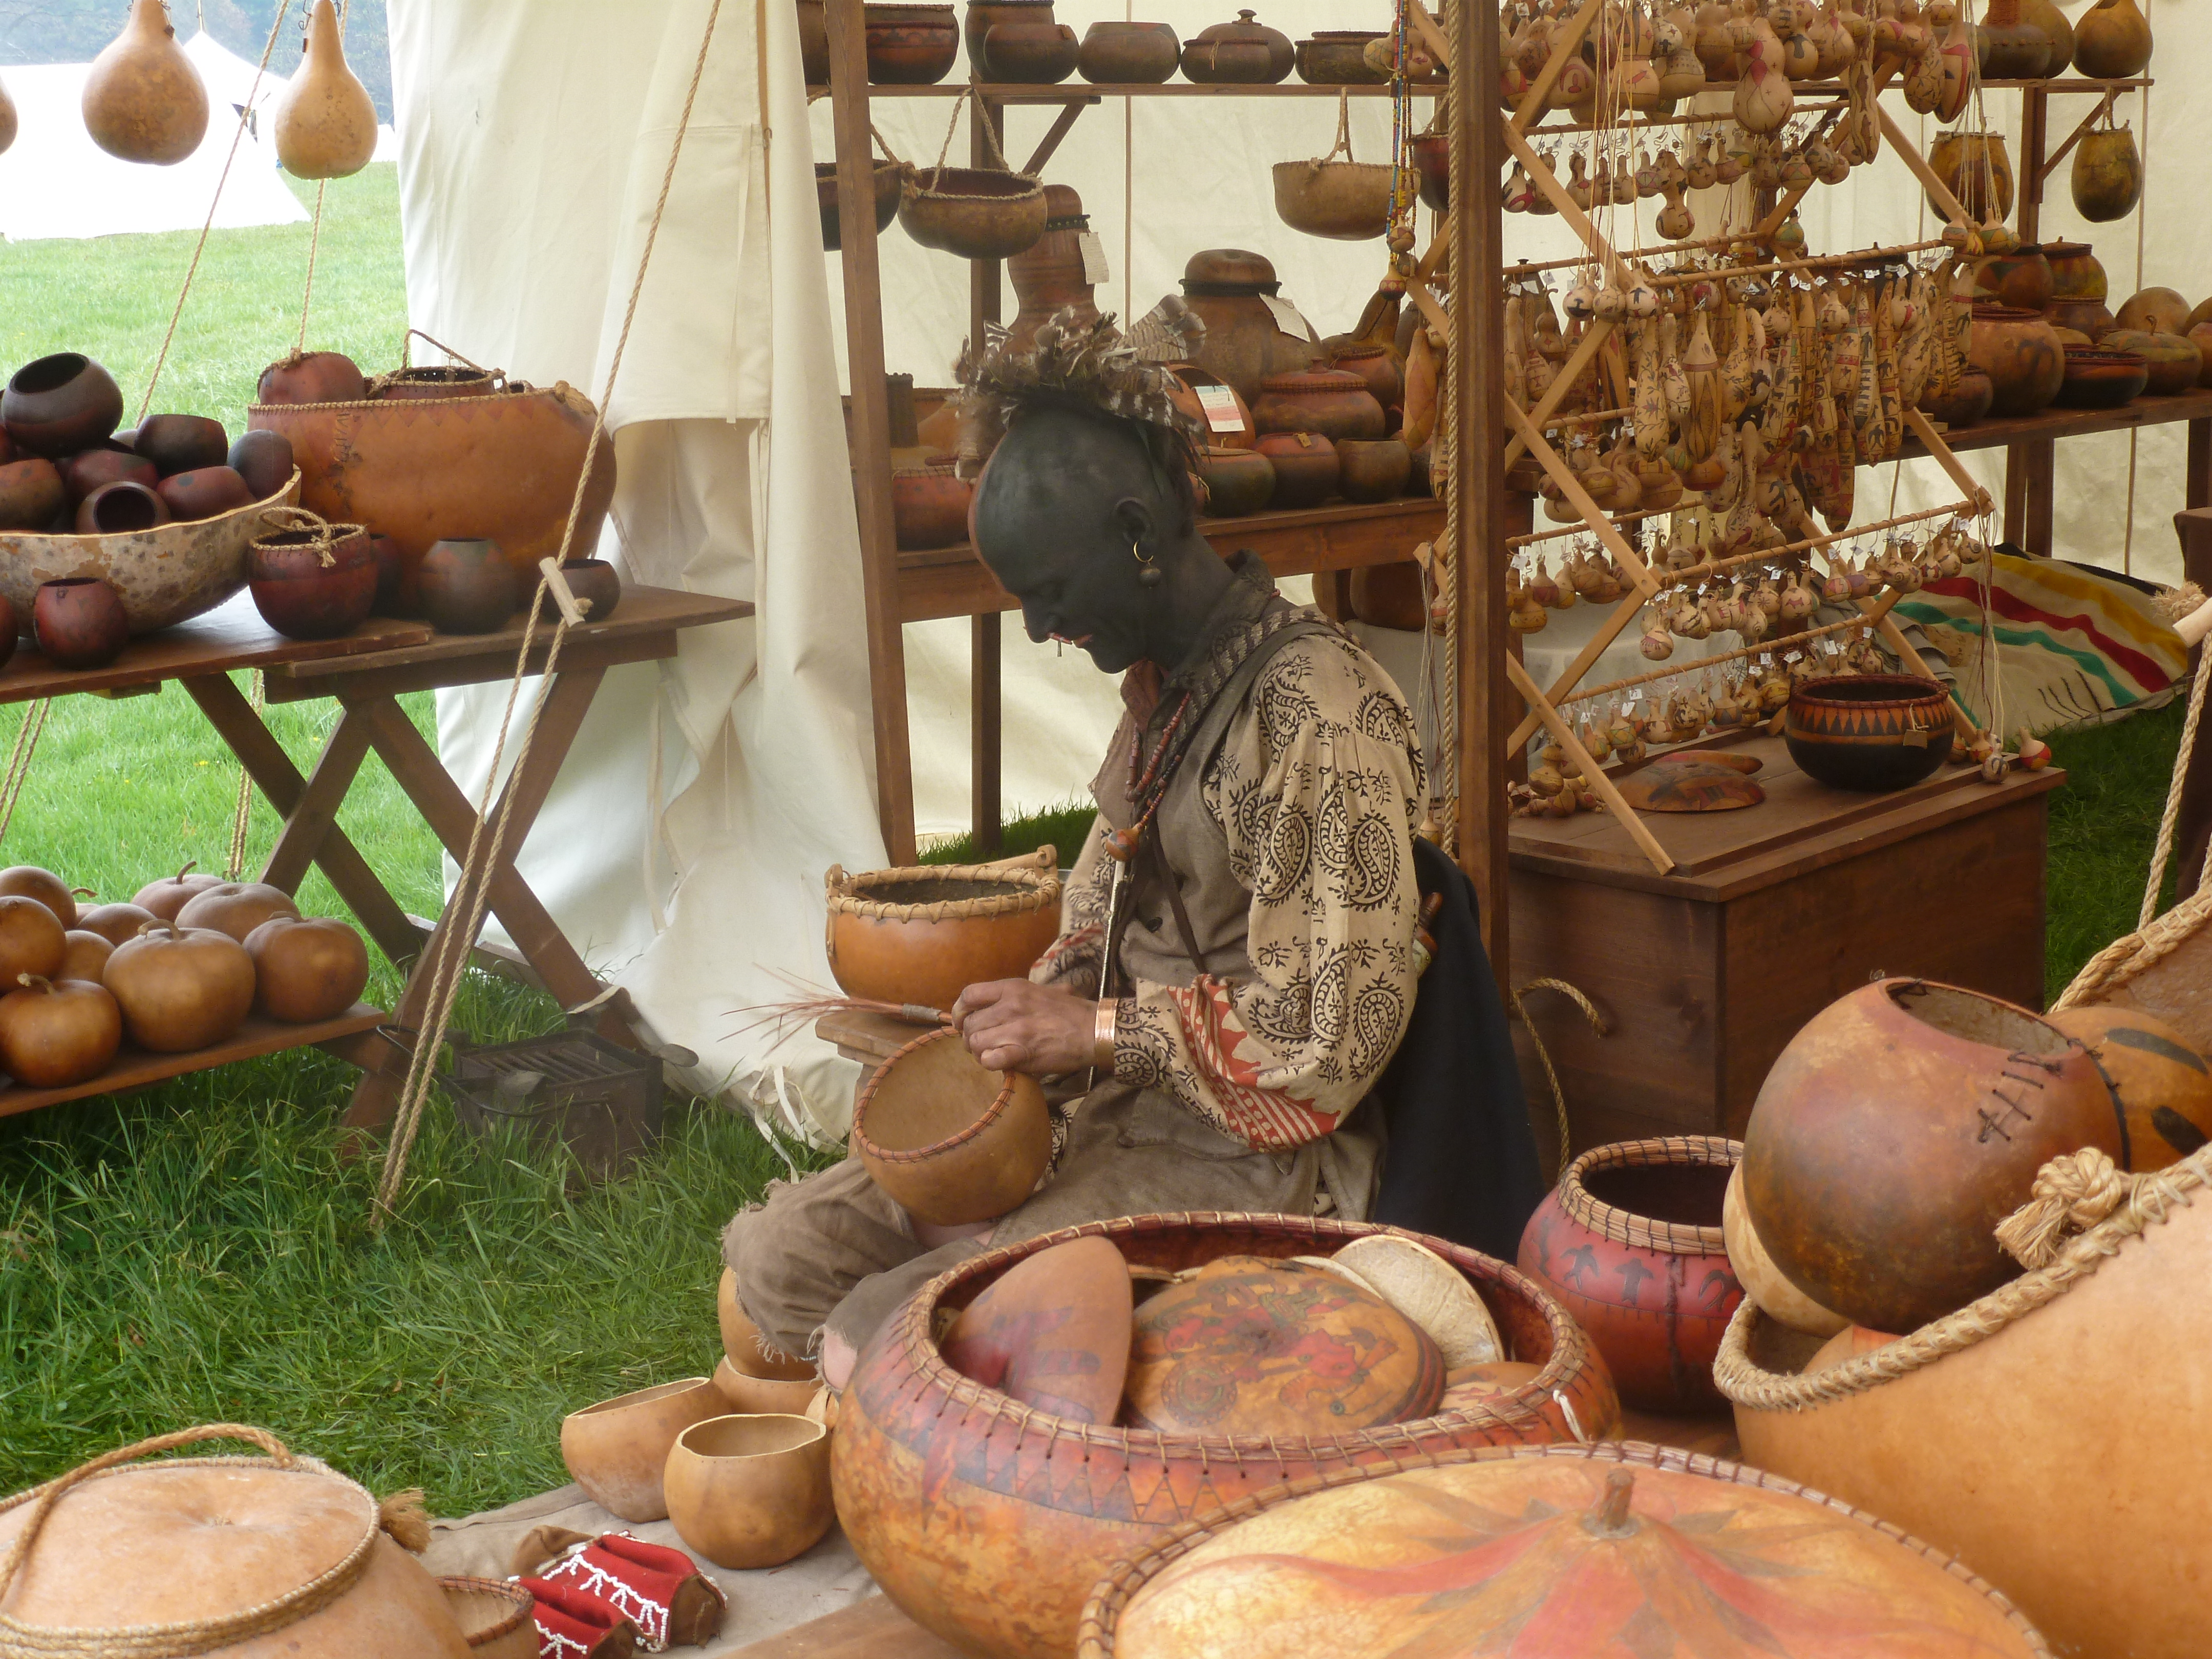 18th Century Market Fair at Fort Frederick: A Taste of Life